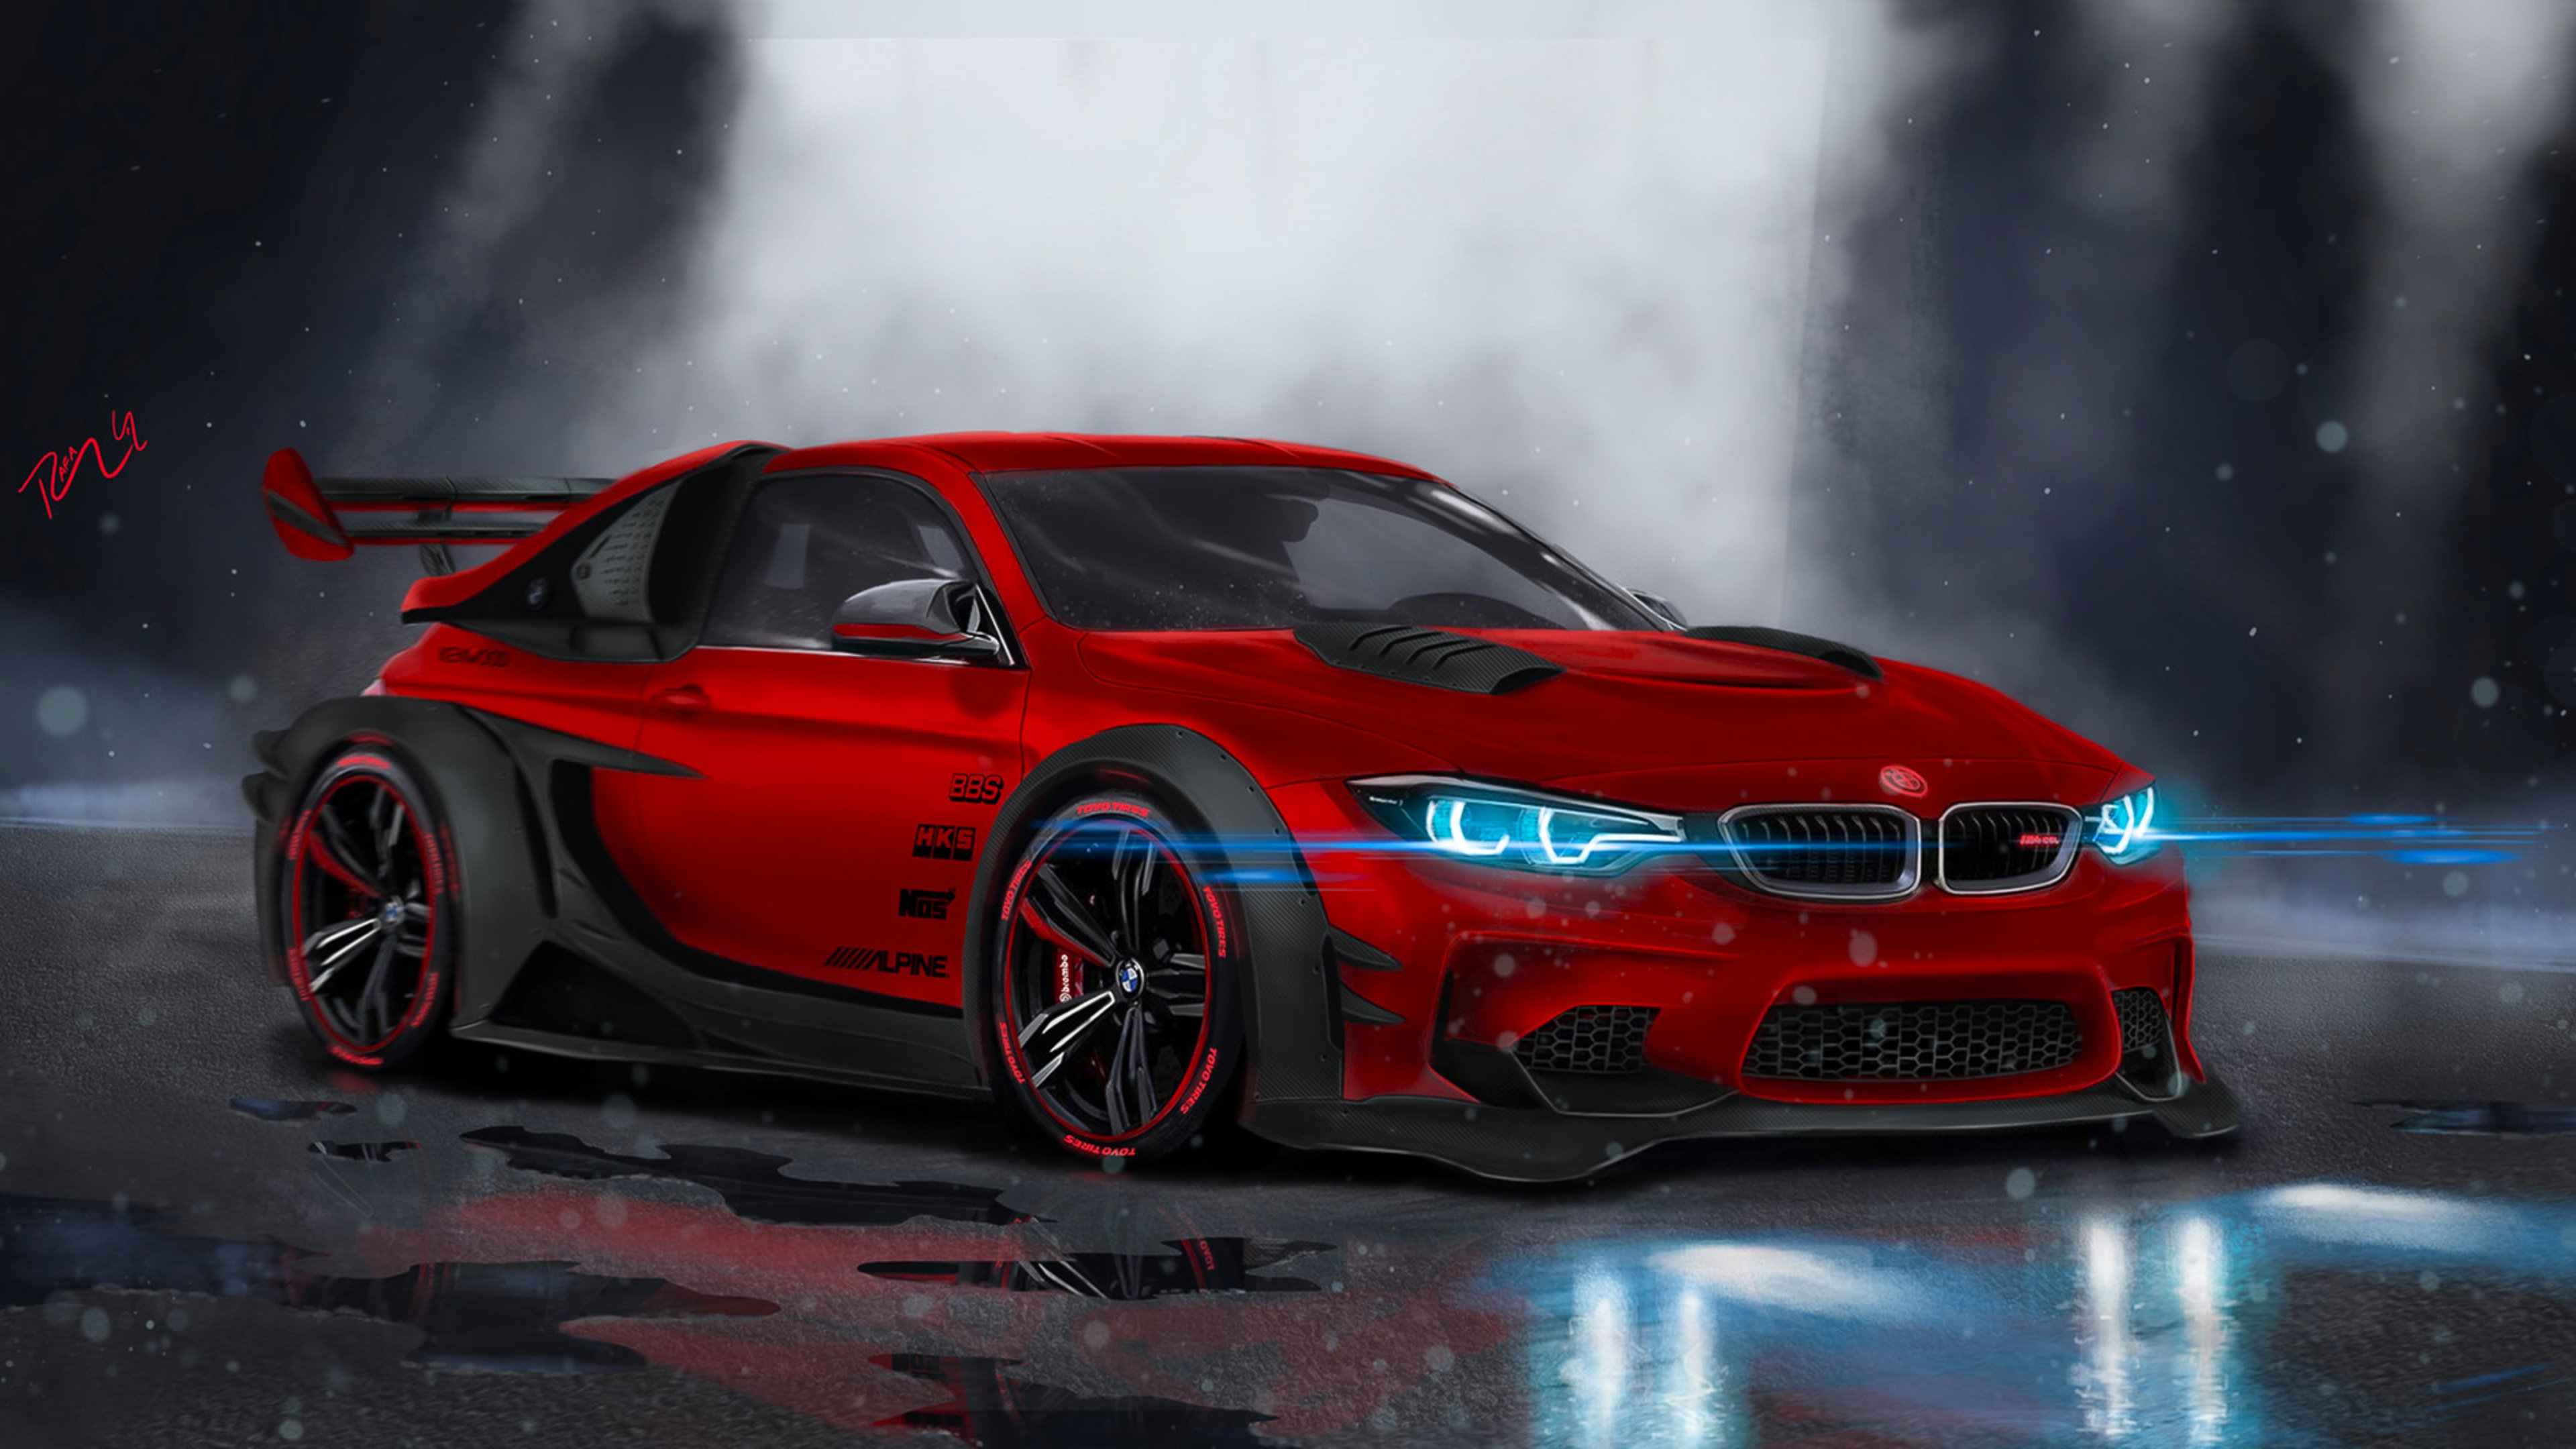 bmw m4 highly modified cars hd 4k wallpapers